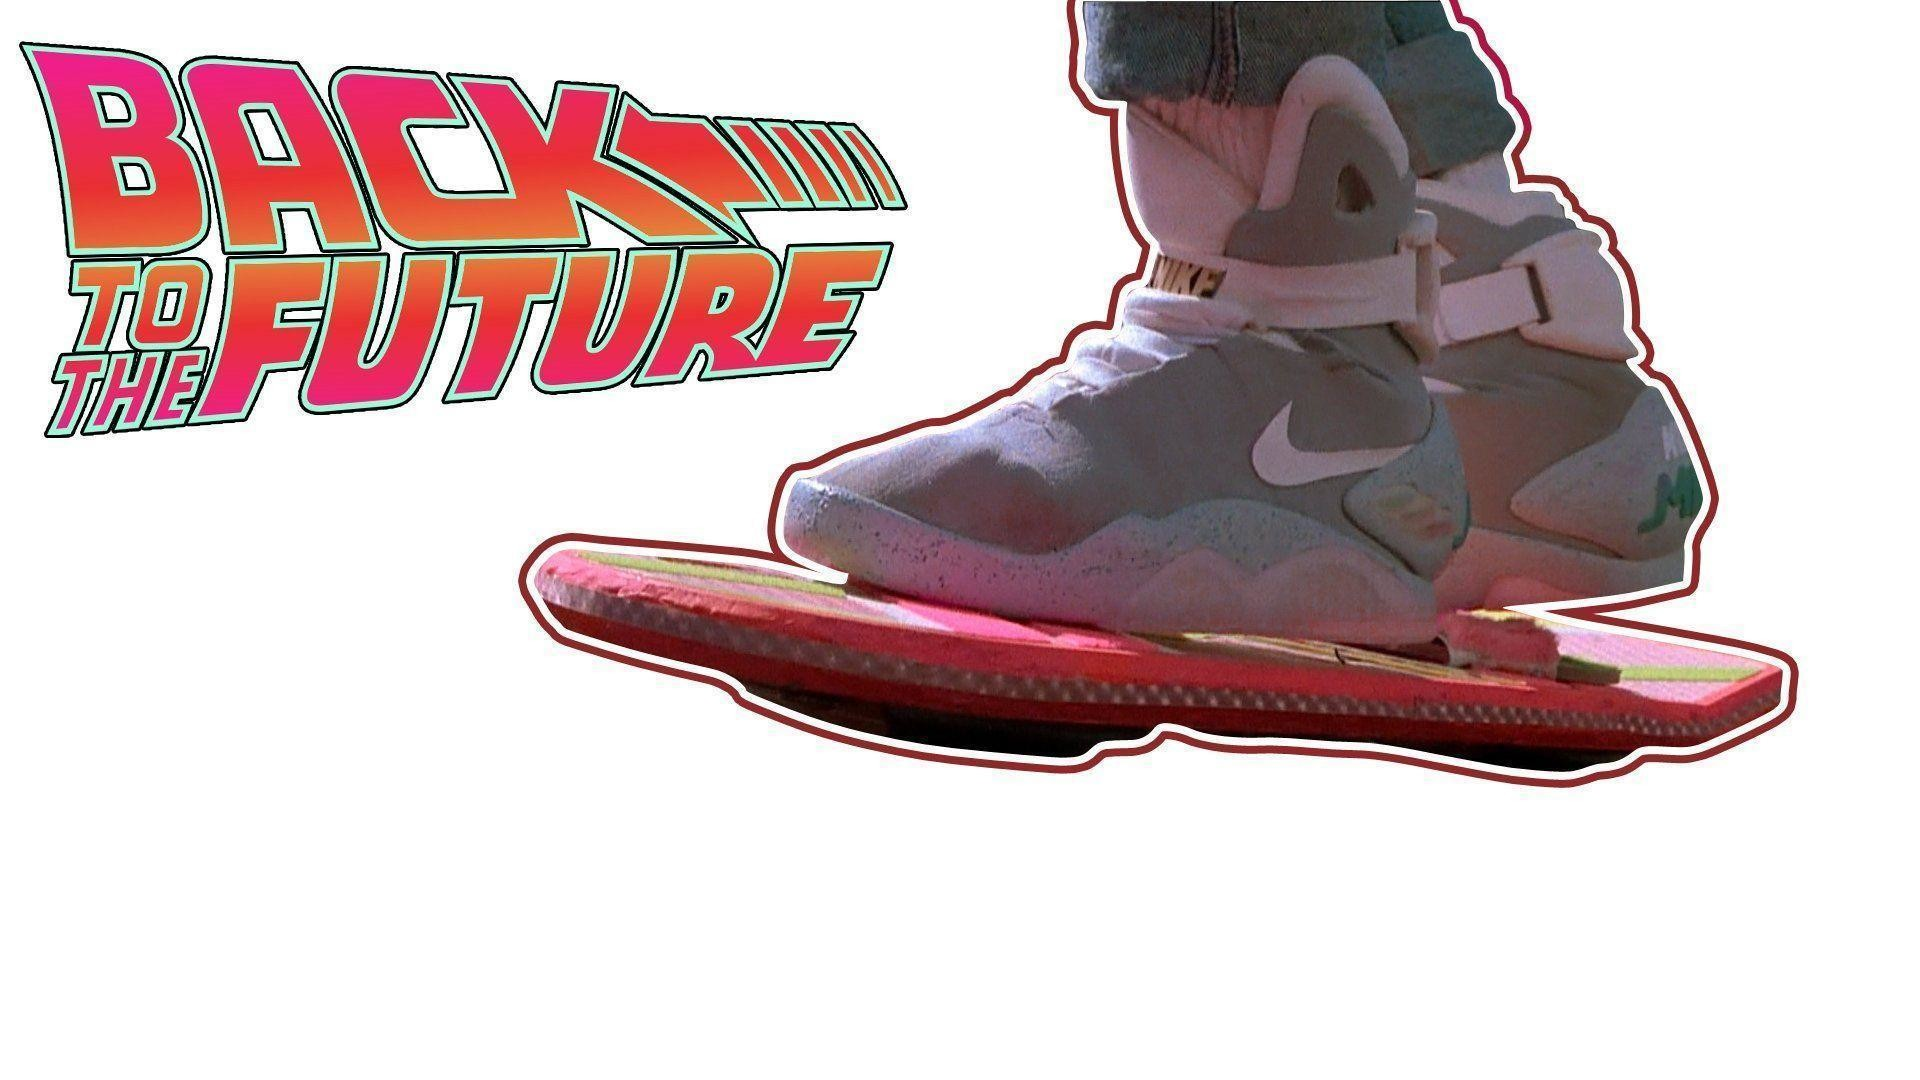 1920x1080 MartyMcfly Hoverboard Computer Wallpapers, Desktop Backgrounds .